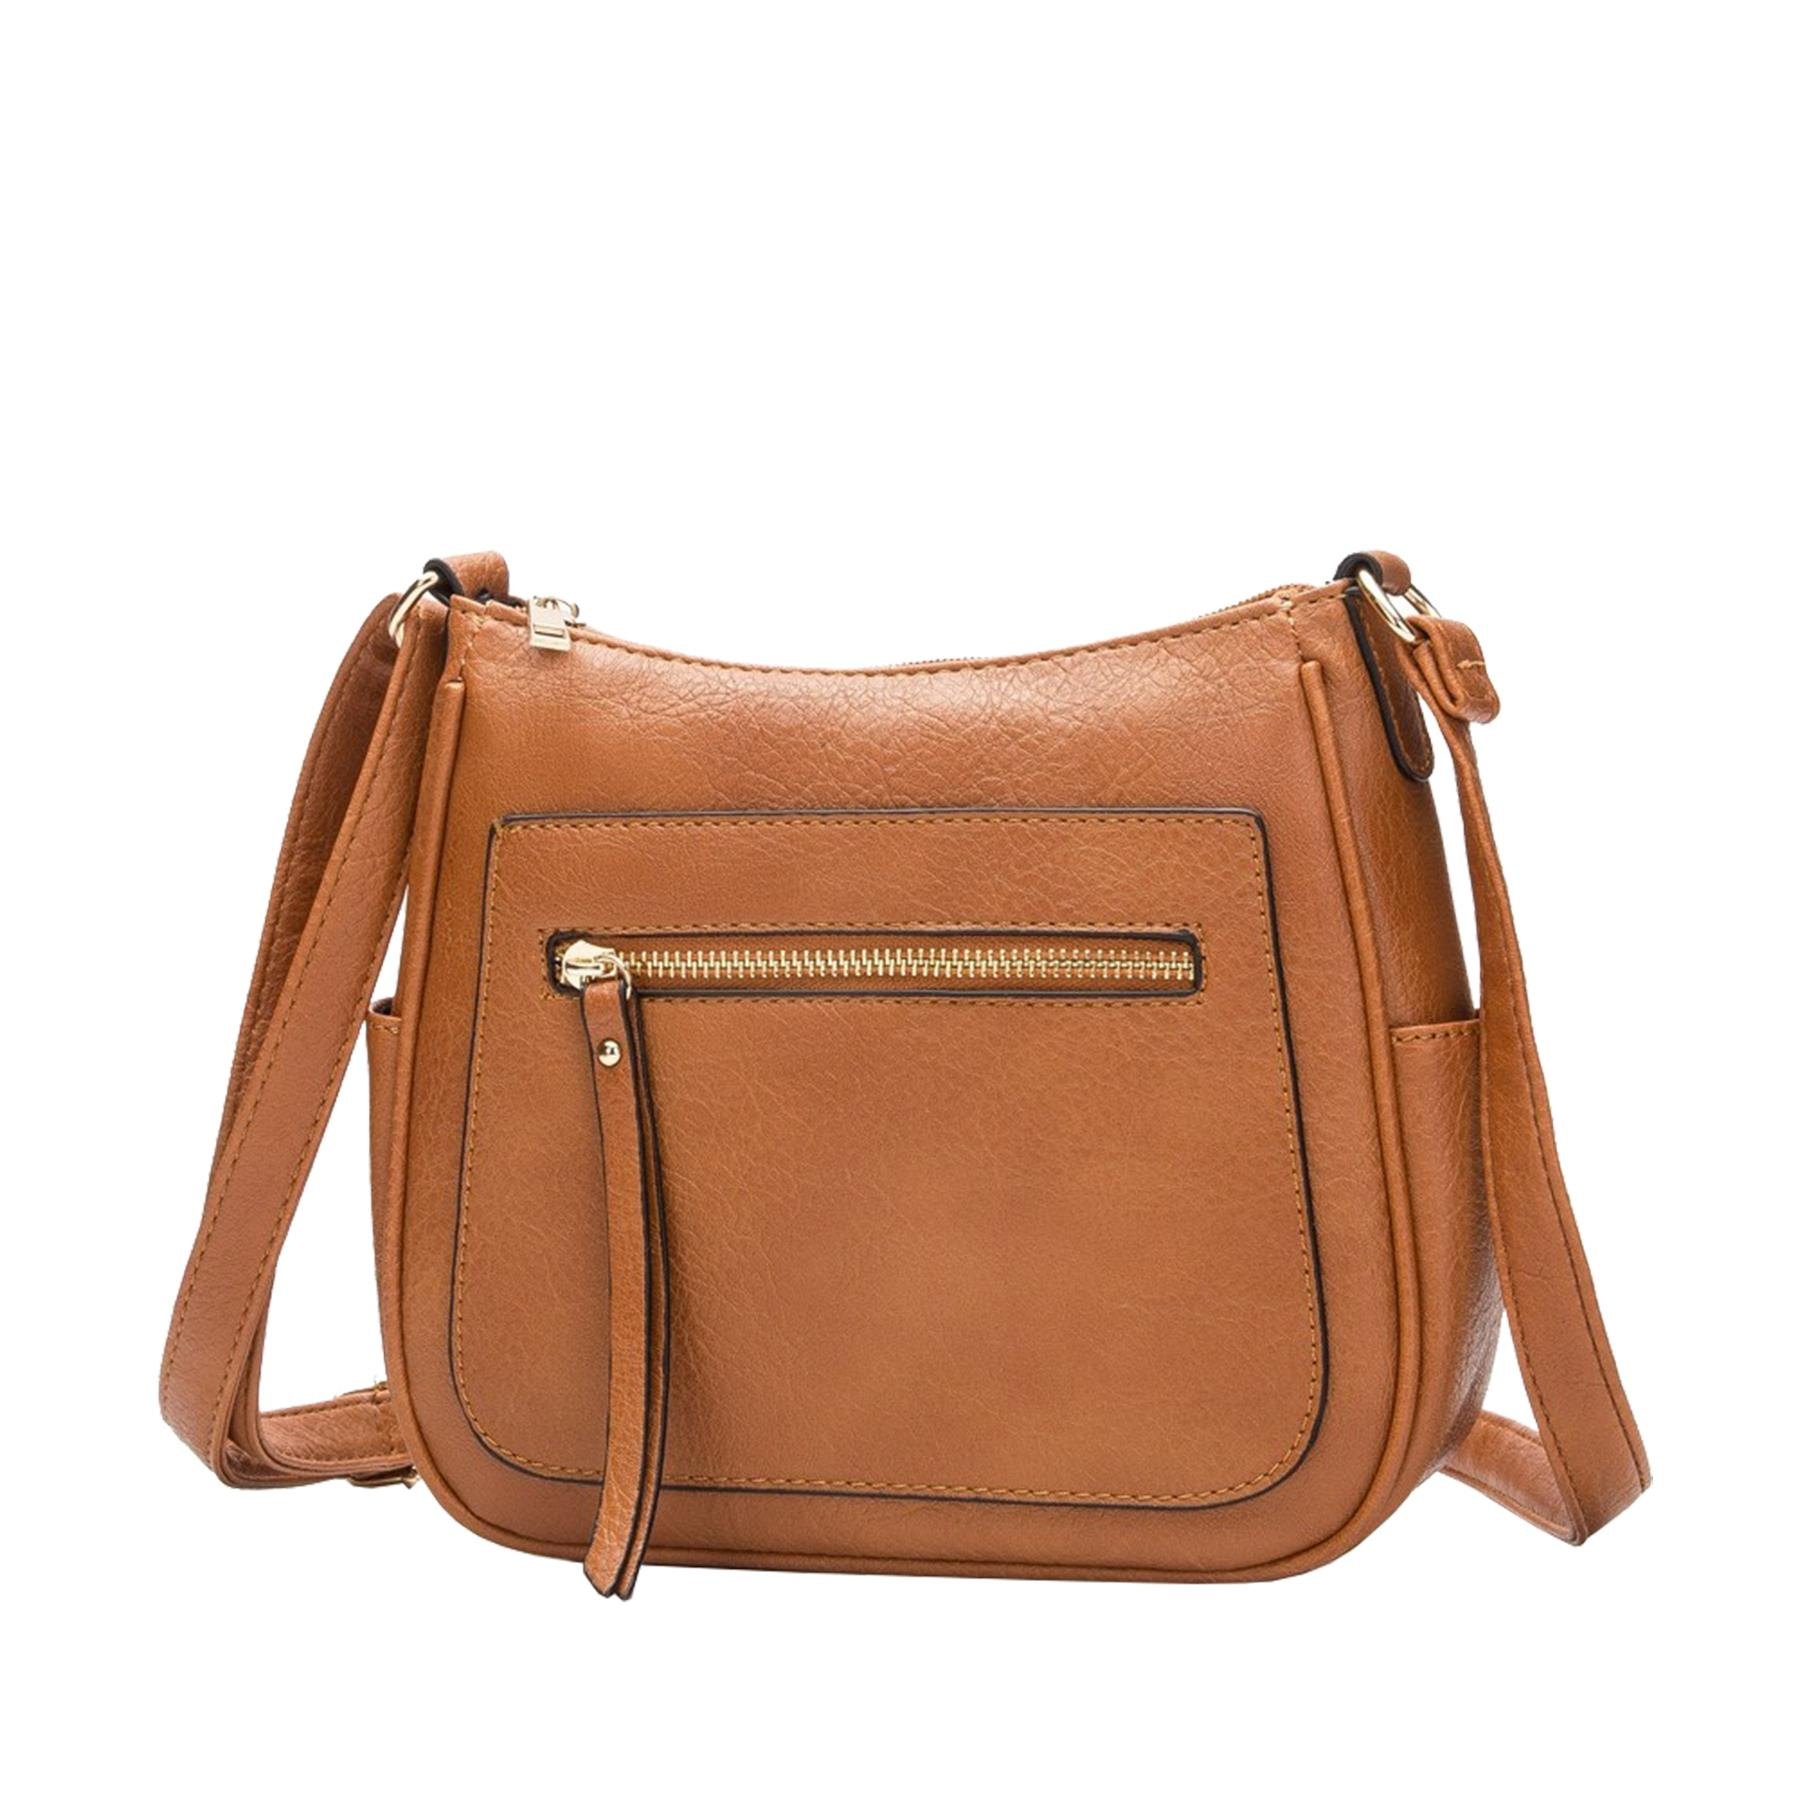 New-Women-s-Front-Zip-Faux-Leather-Basic-Small-Crossbody-Messenger-Bag thumbnail 15